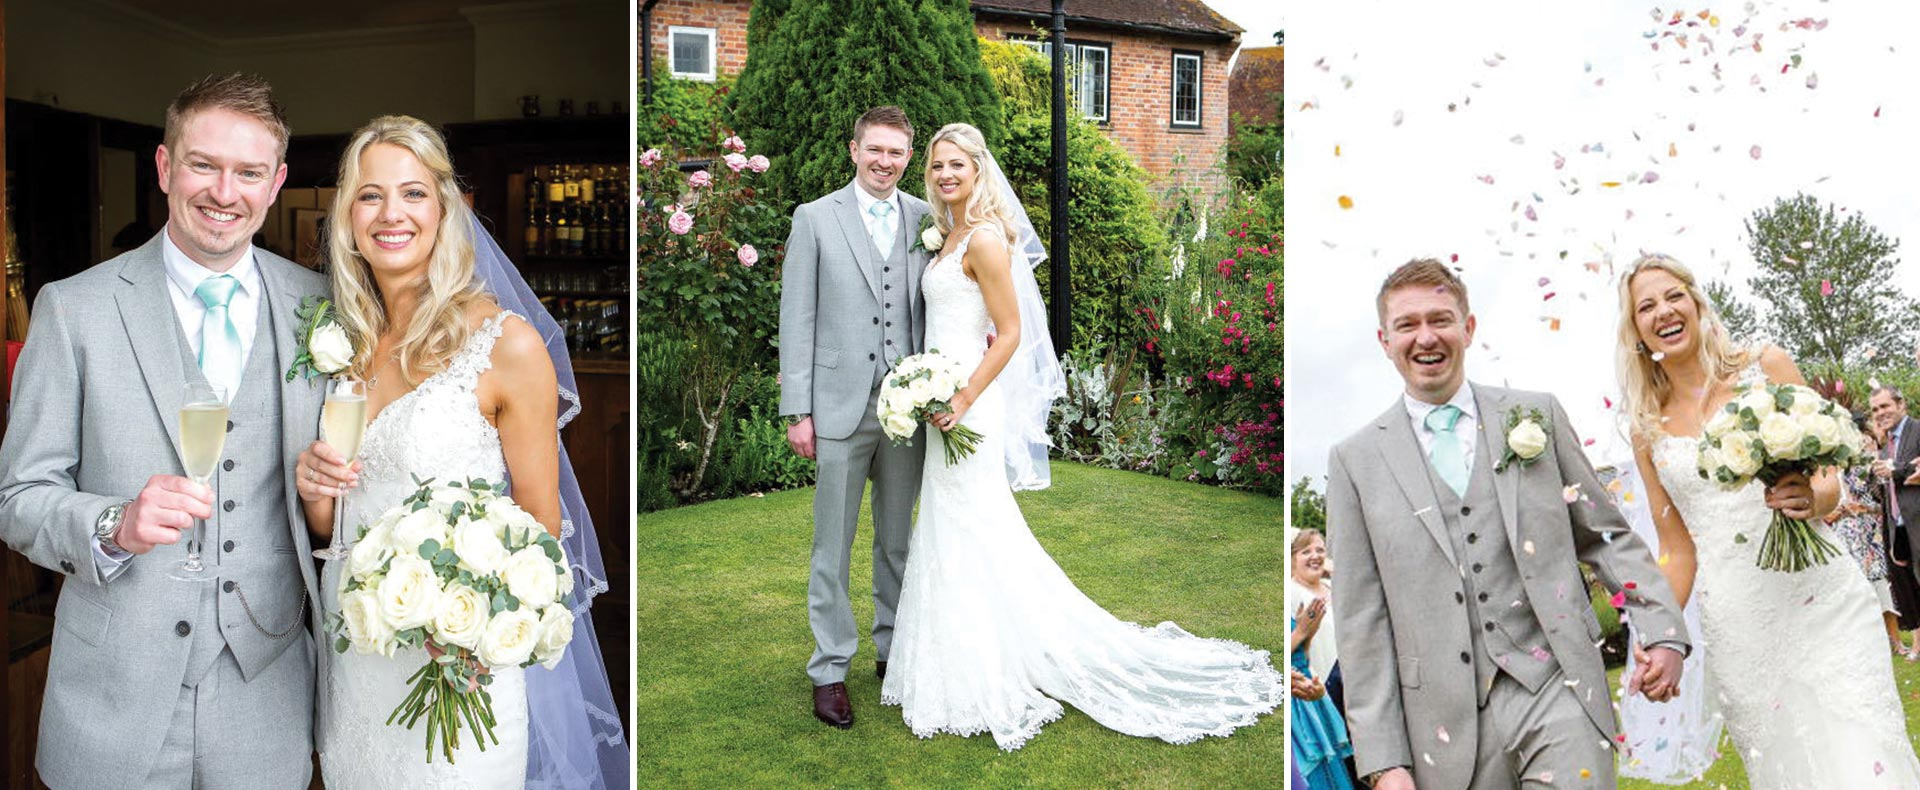 Real Weddings at The Montagu Arms | Andrew & Pamela 1